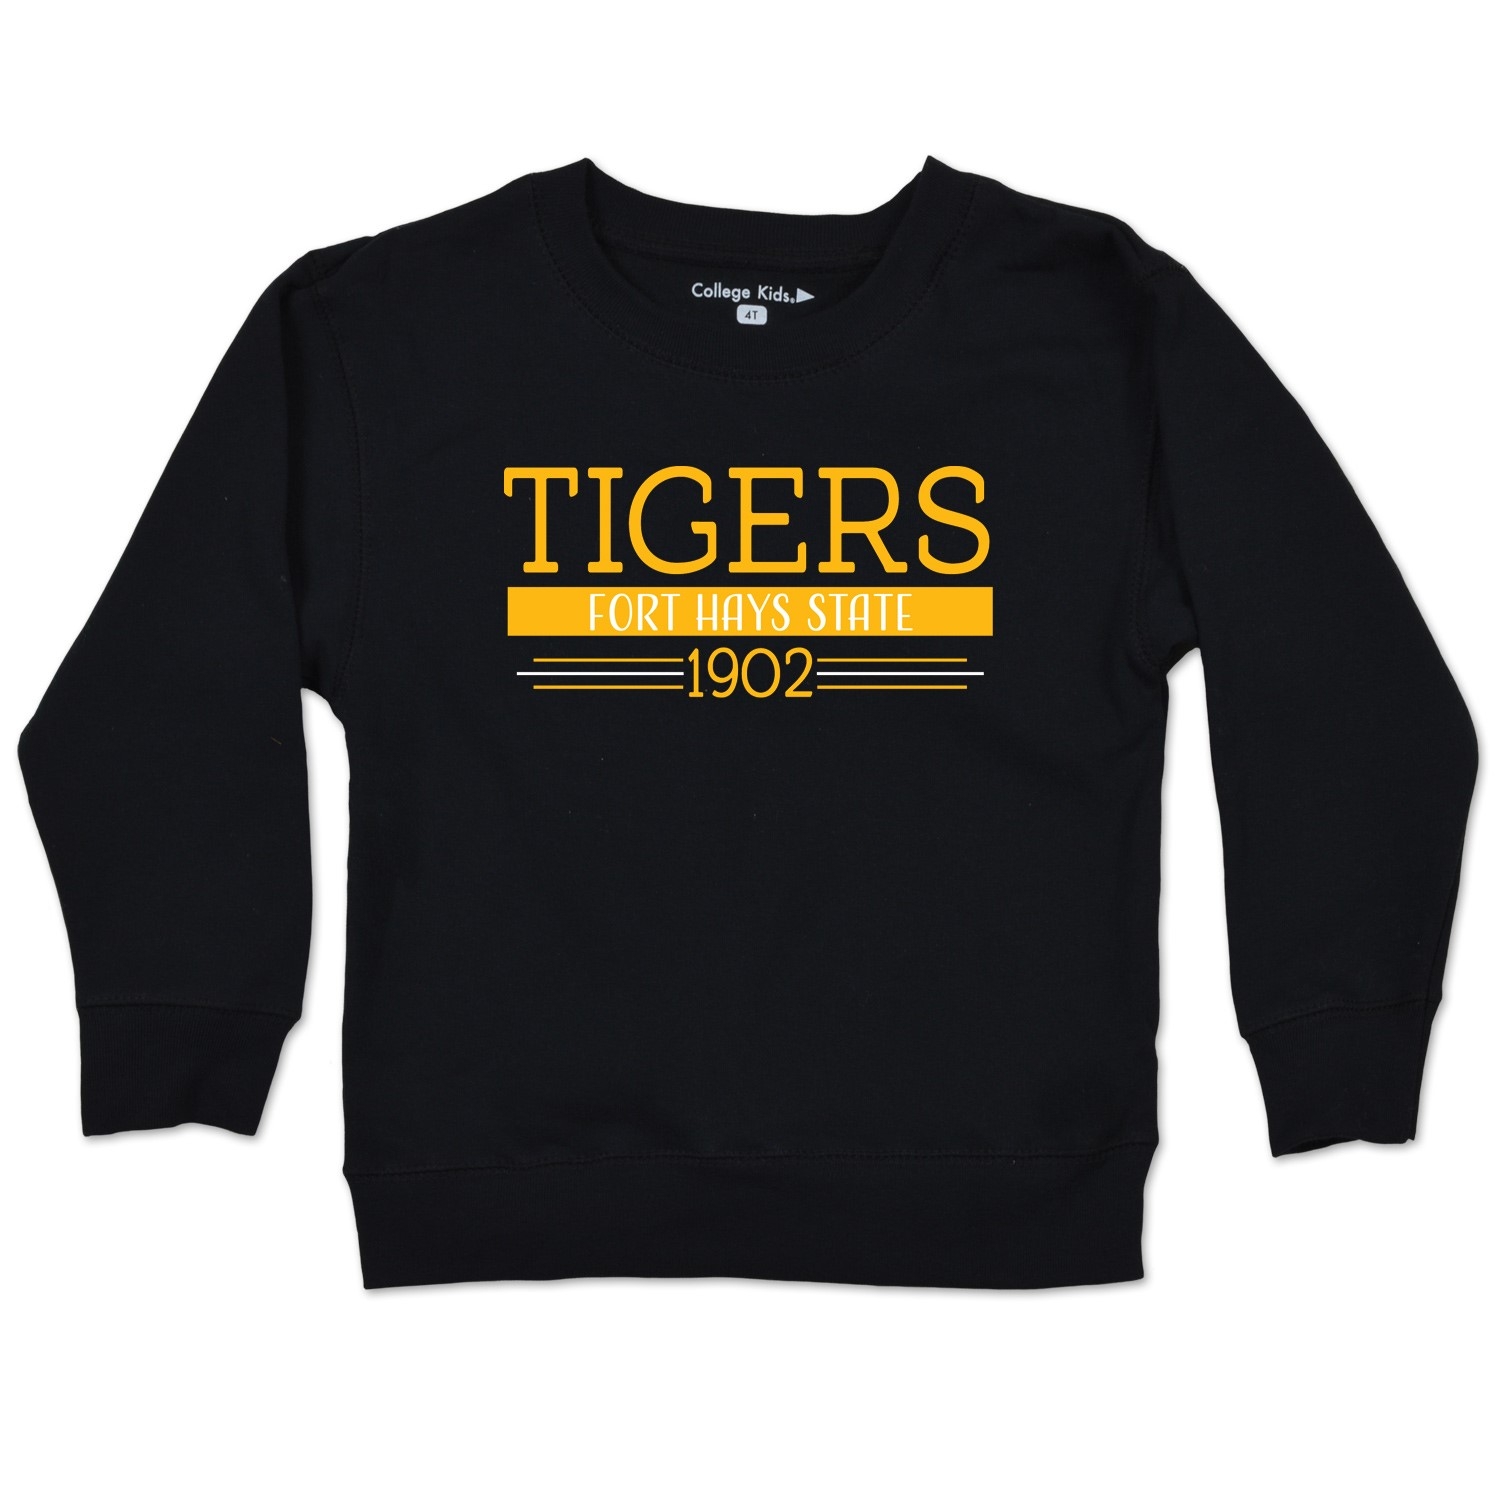 Image for the Tigers Fort Hays State 1902 Toddler Crewneck Sweater, Black, College Kids product